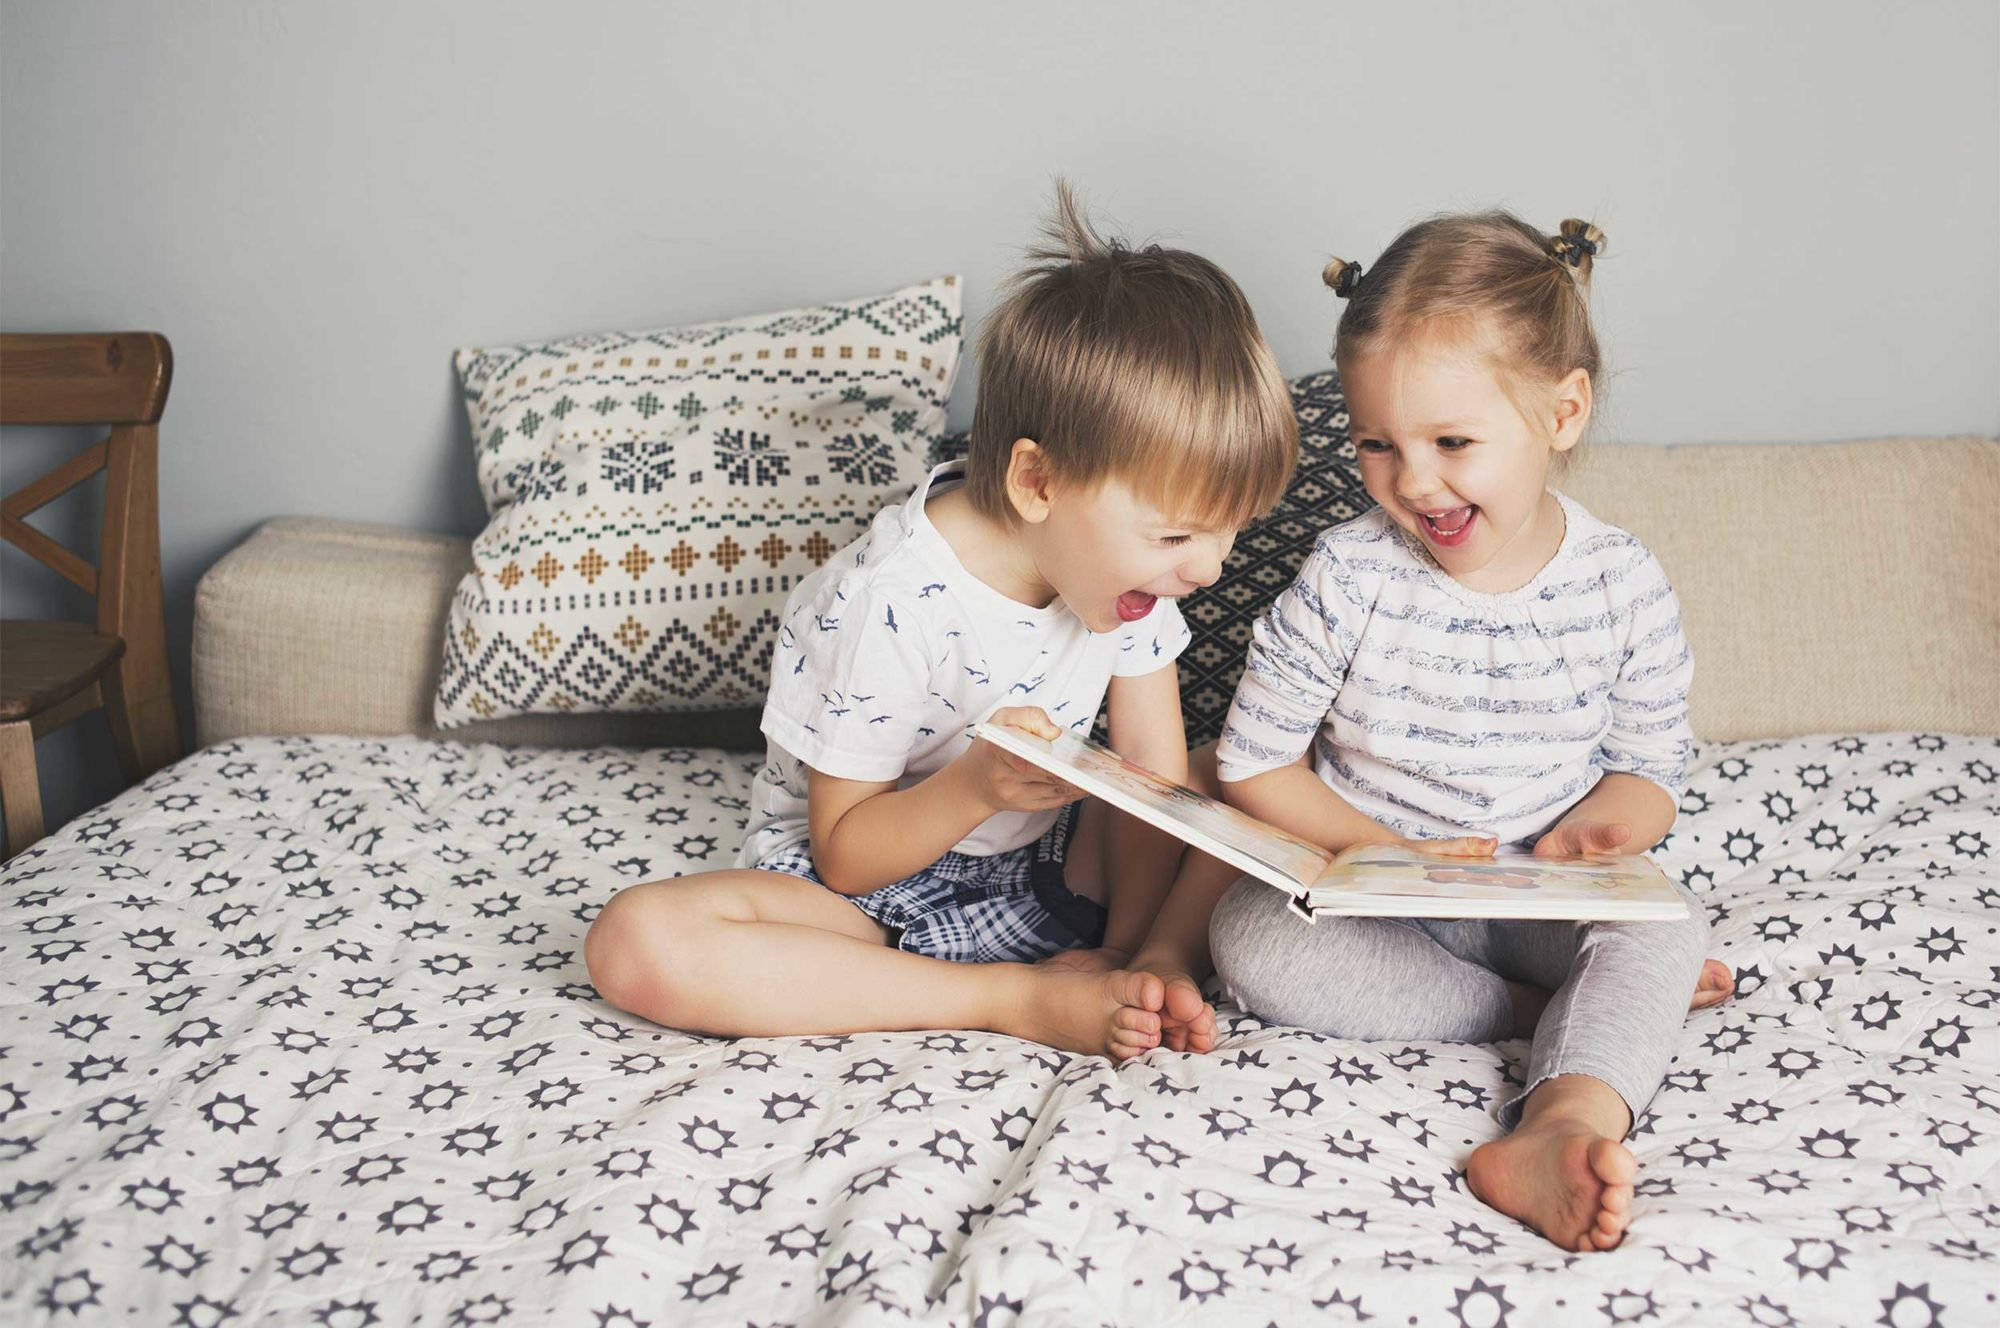 A young boy and girl sit on bed laughing and reading a book